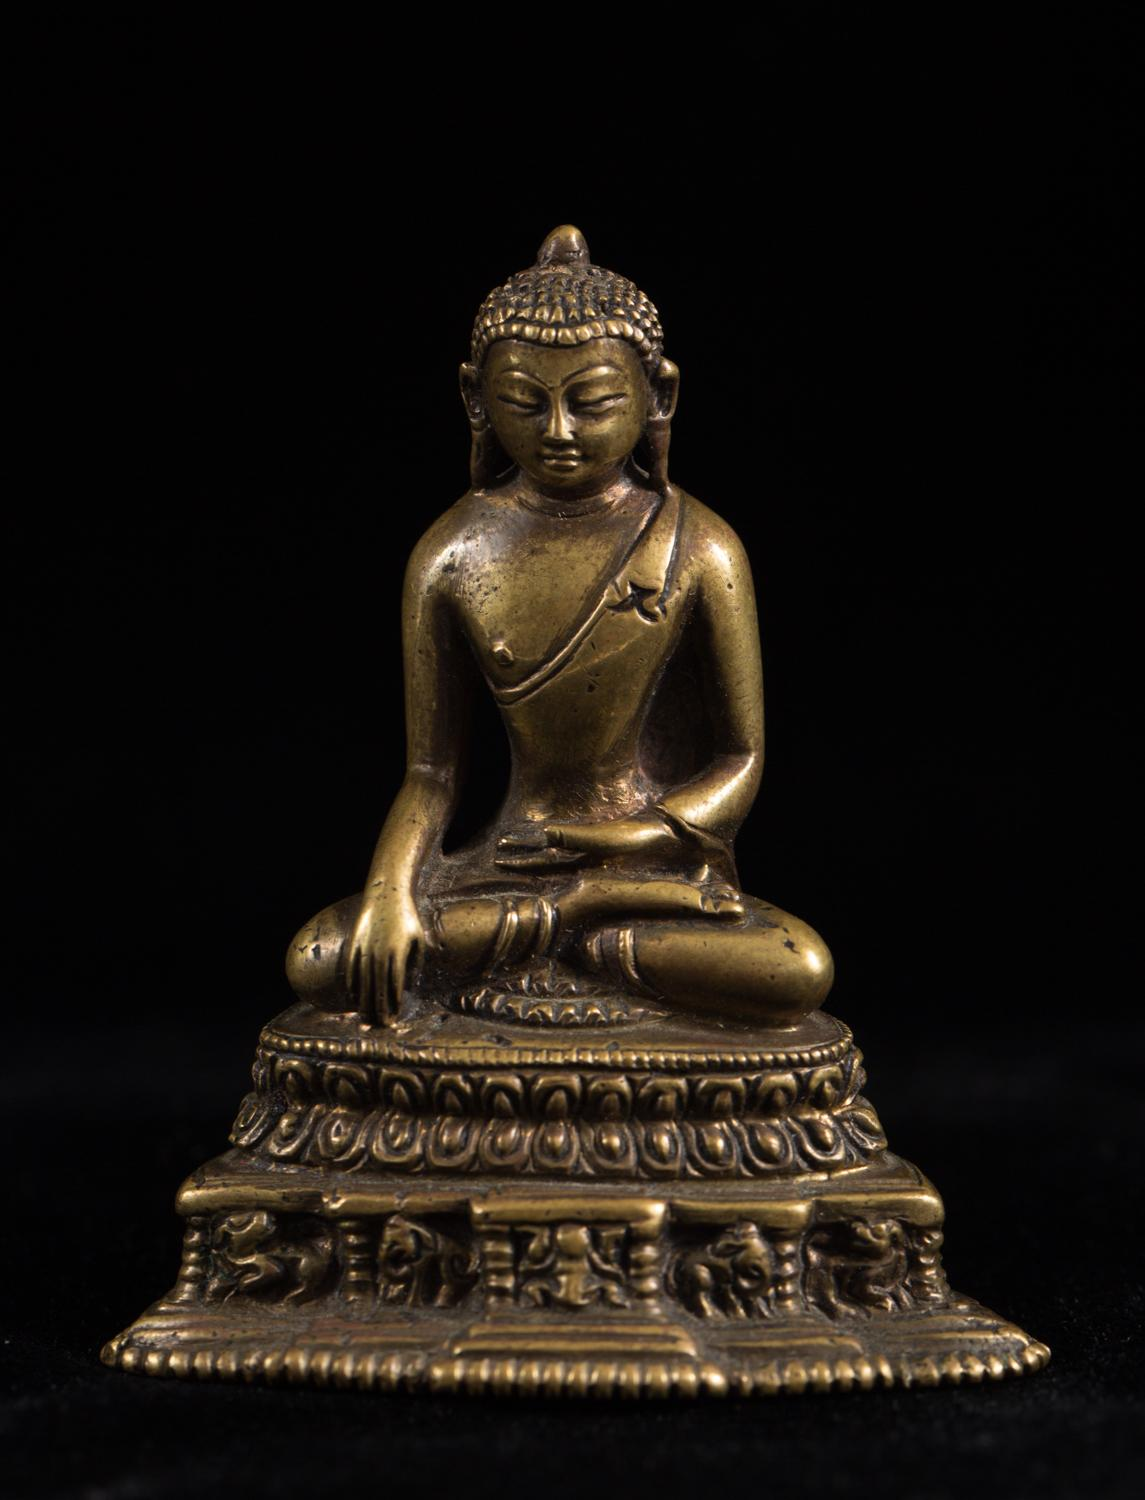 铜鎏佛像,  阿閦佛, Bronze Buddha Figure Akshobhya 17th Century  Five Wisdom Buddhas Asian Art, New York Auction House, Houston Auction, Dallas Auction, San Antonio Auction, Chinese Auction, 海外捡漏, 中国艺术拍卖